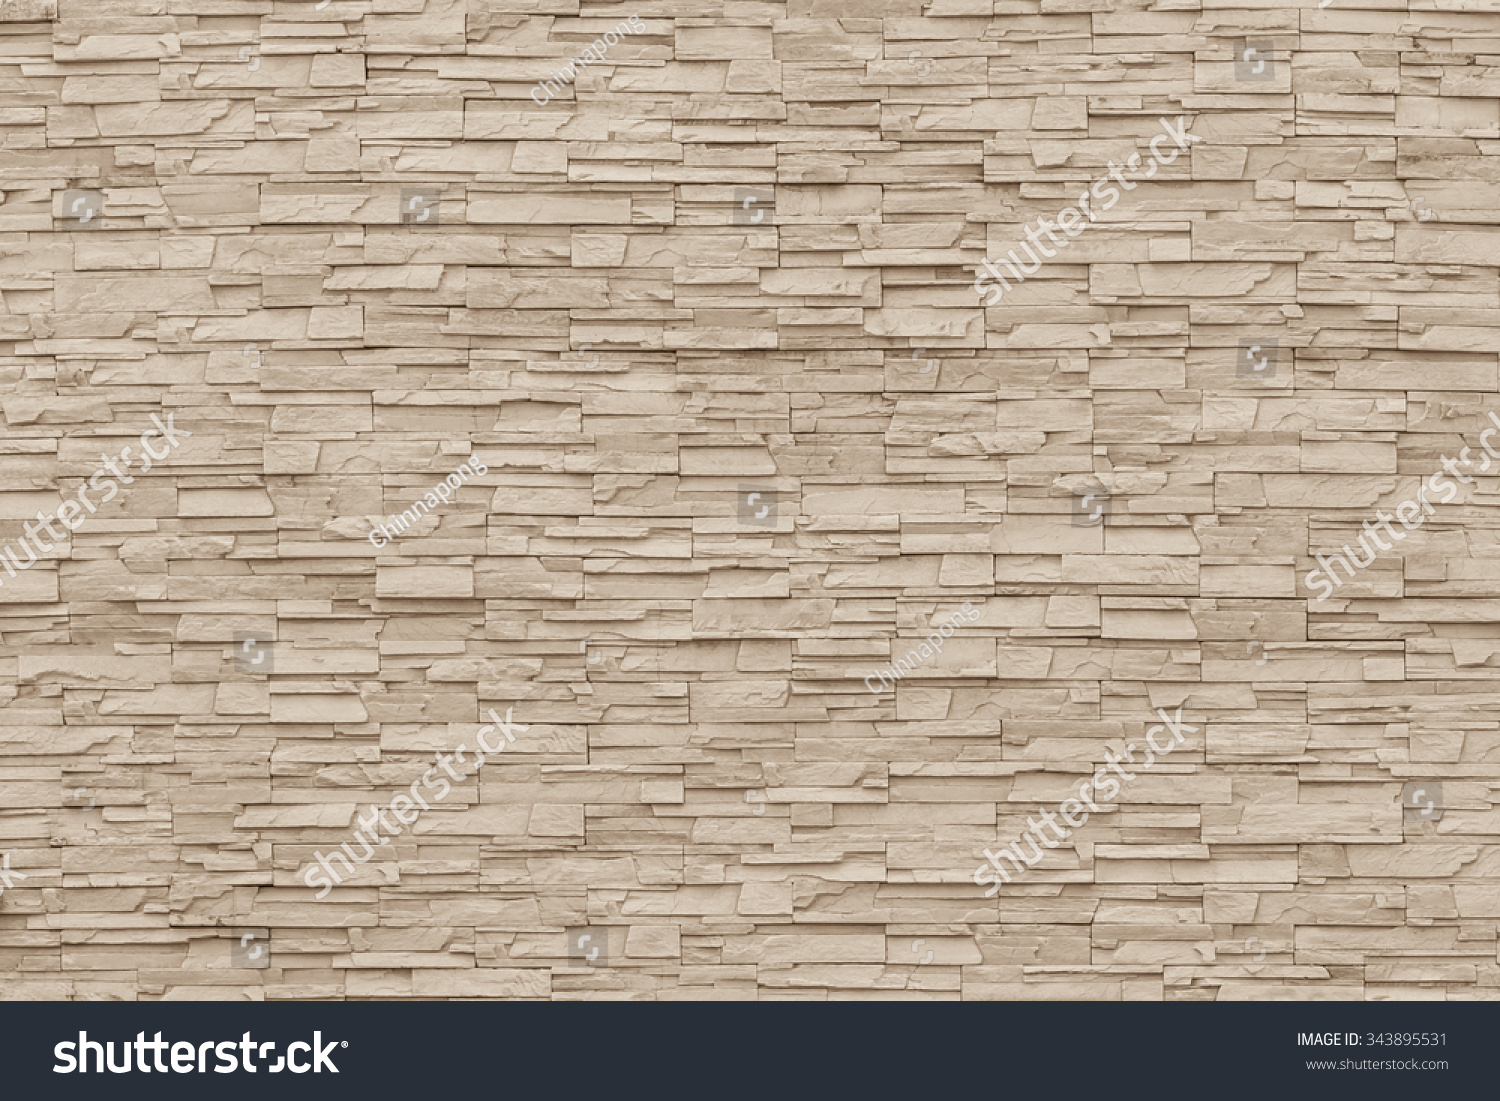 Rock Stone Brick Tile Wall Aged Texture Detailed Pattern Background In